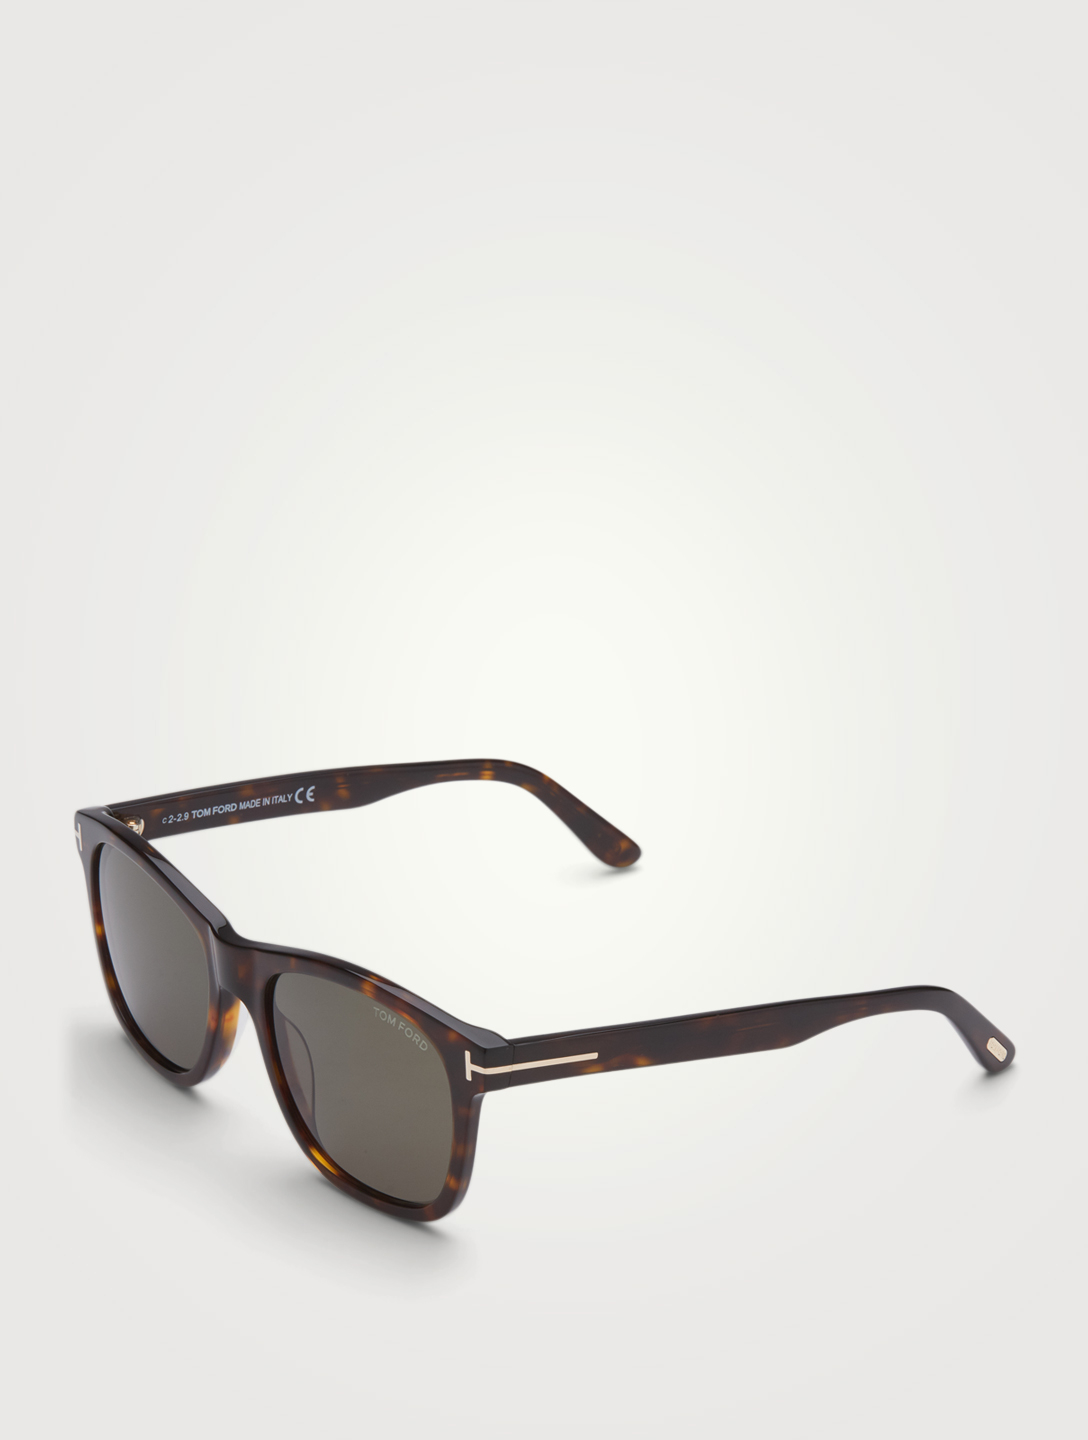 2446a62fe7a ... TOM FORD Eric Square Sunglasses Men s Brown